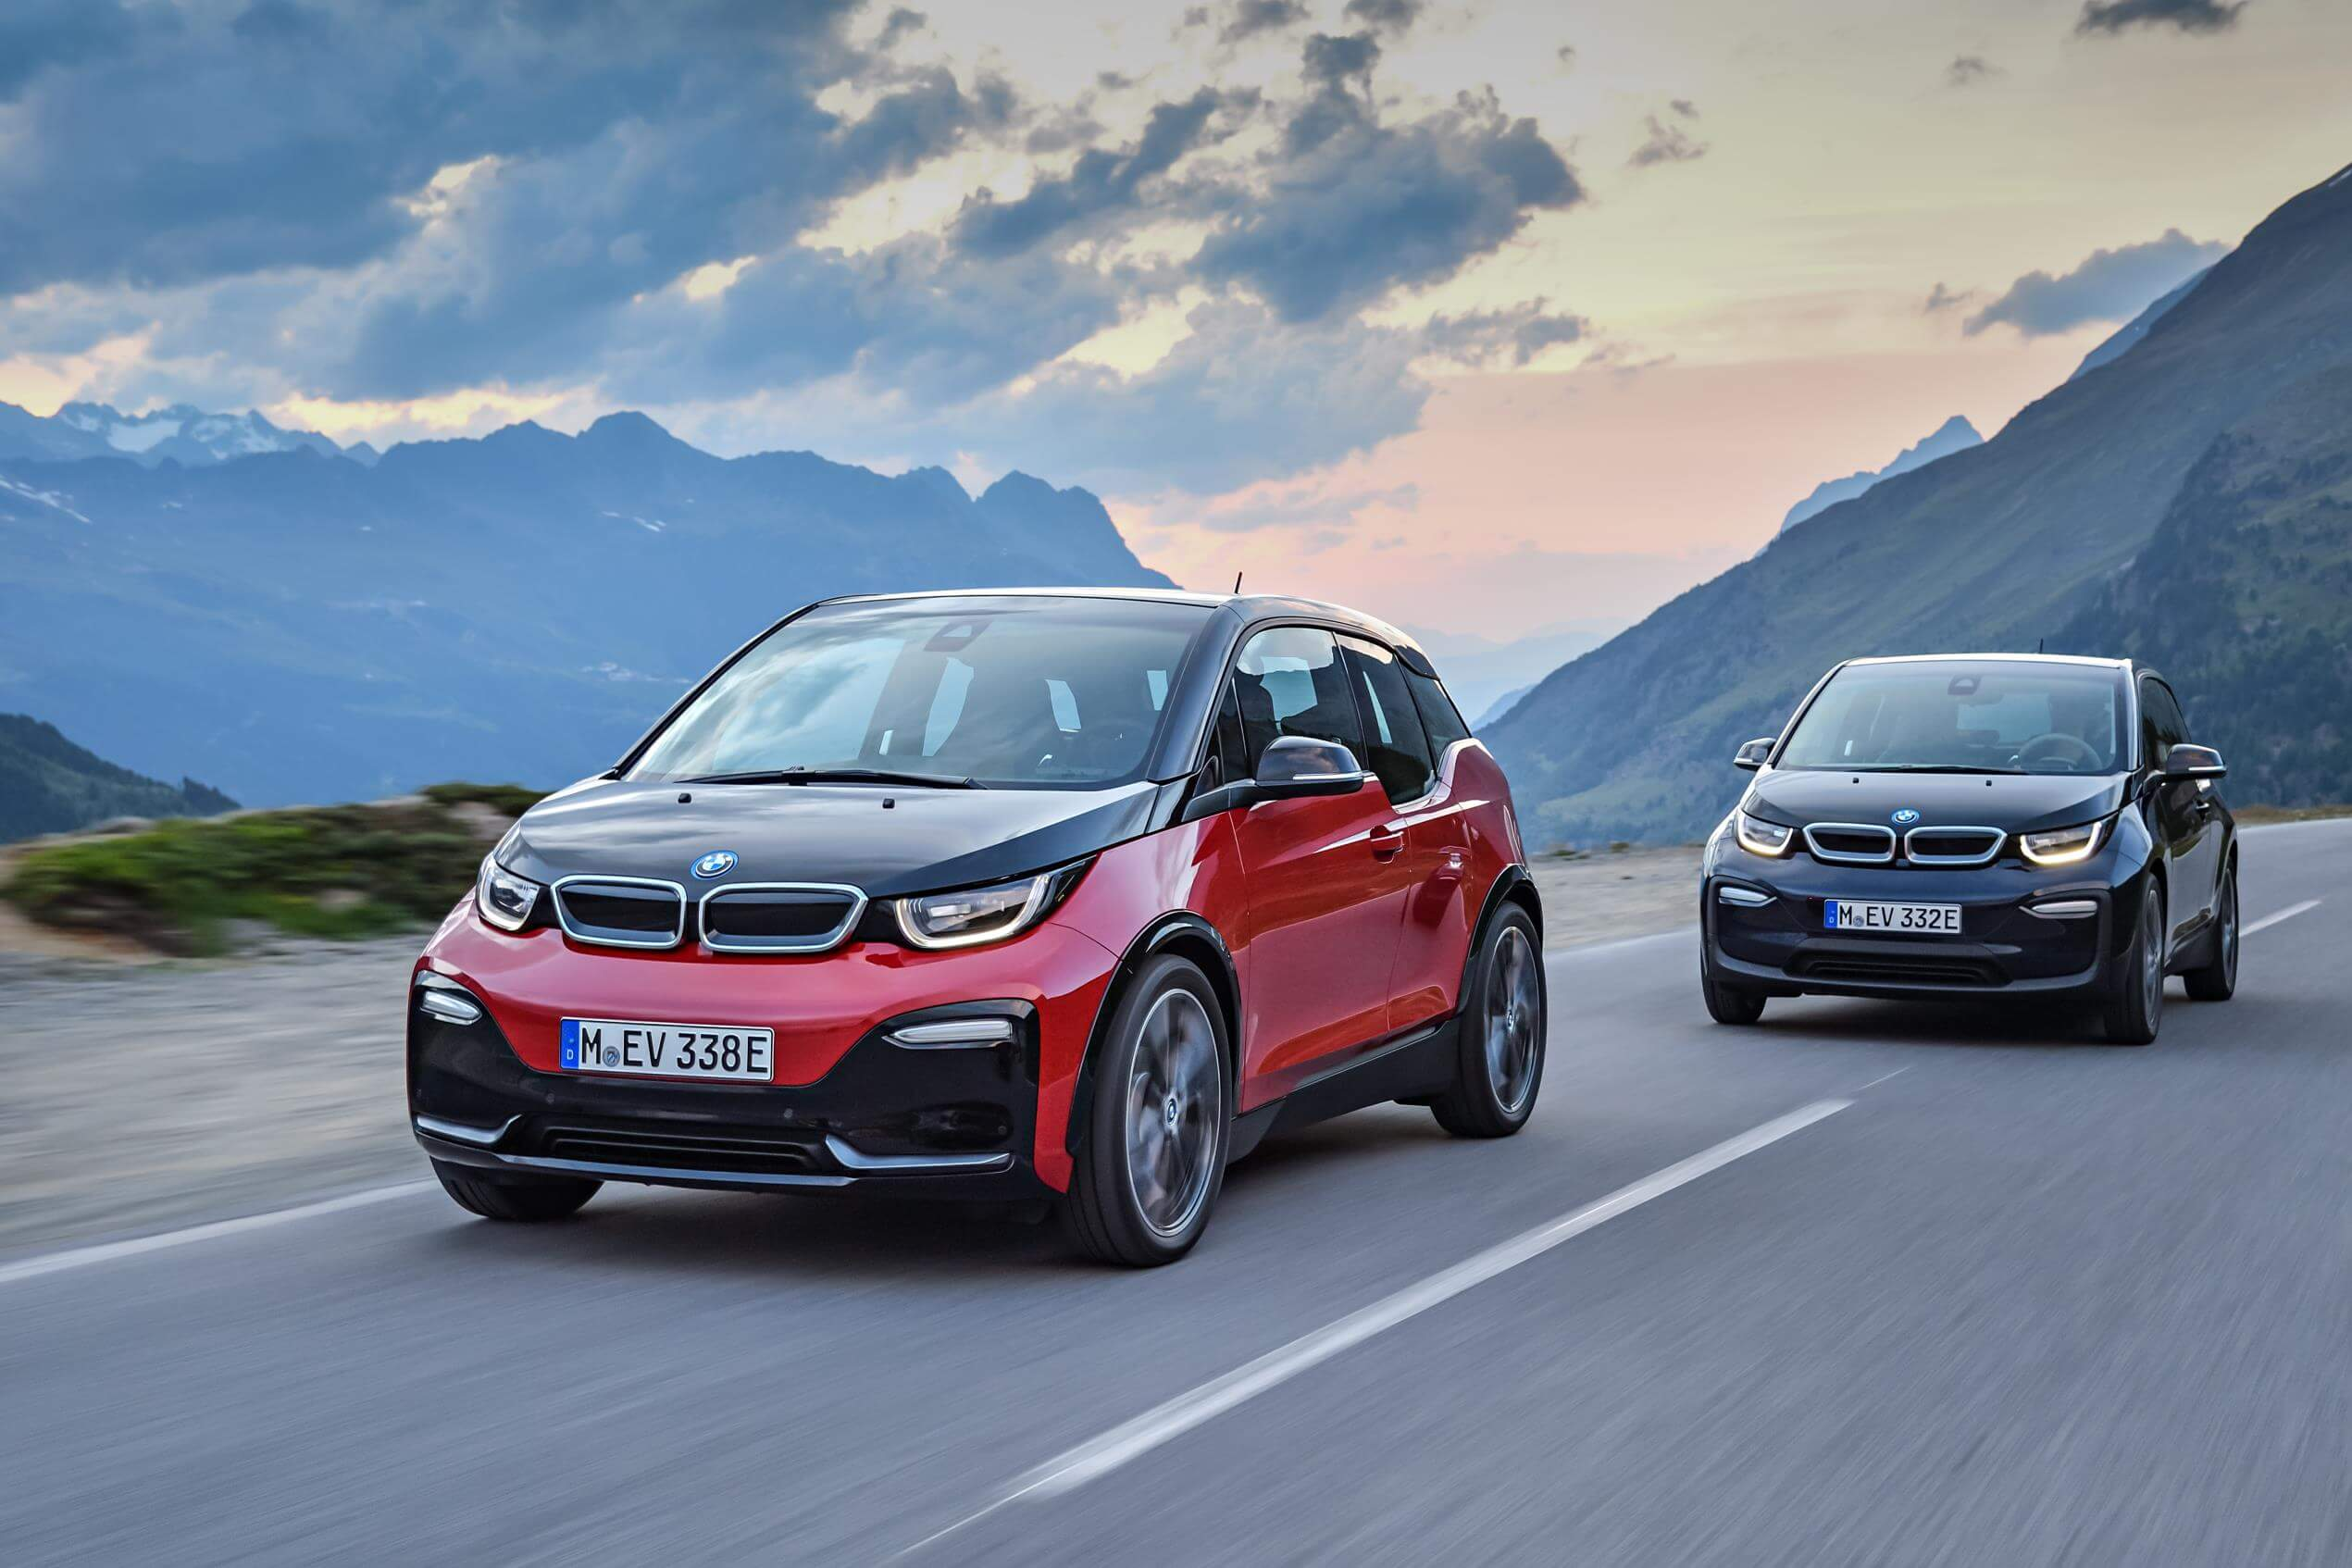 BMW i3: Are electric cars cheaper to service than petrol or diesels?